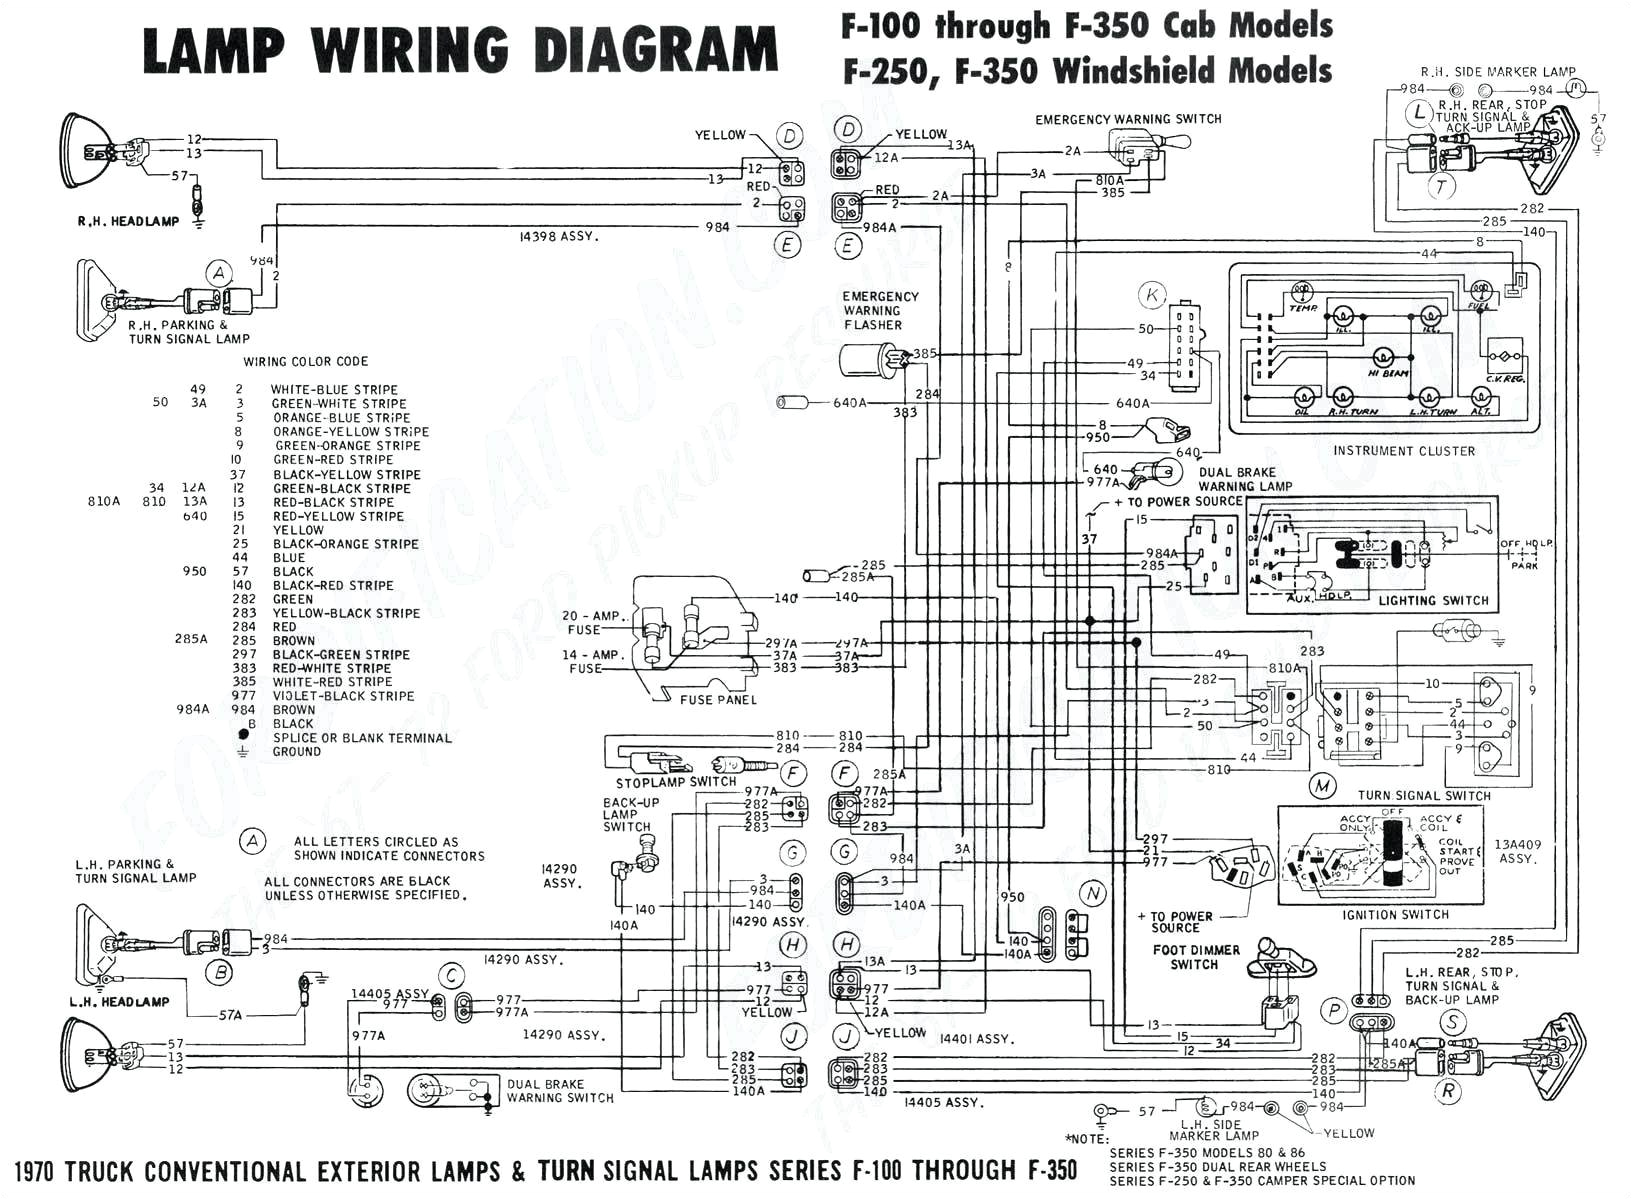 1993 Chevy 1500 Fuel Pump Wiring Diagram Wiring Diagram 2005 Chevy Silverado 1500 Fuel System Wiring Free